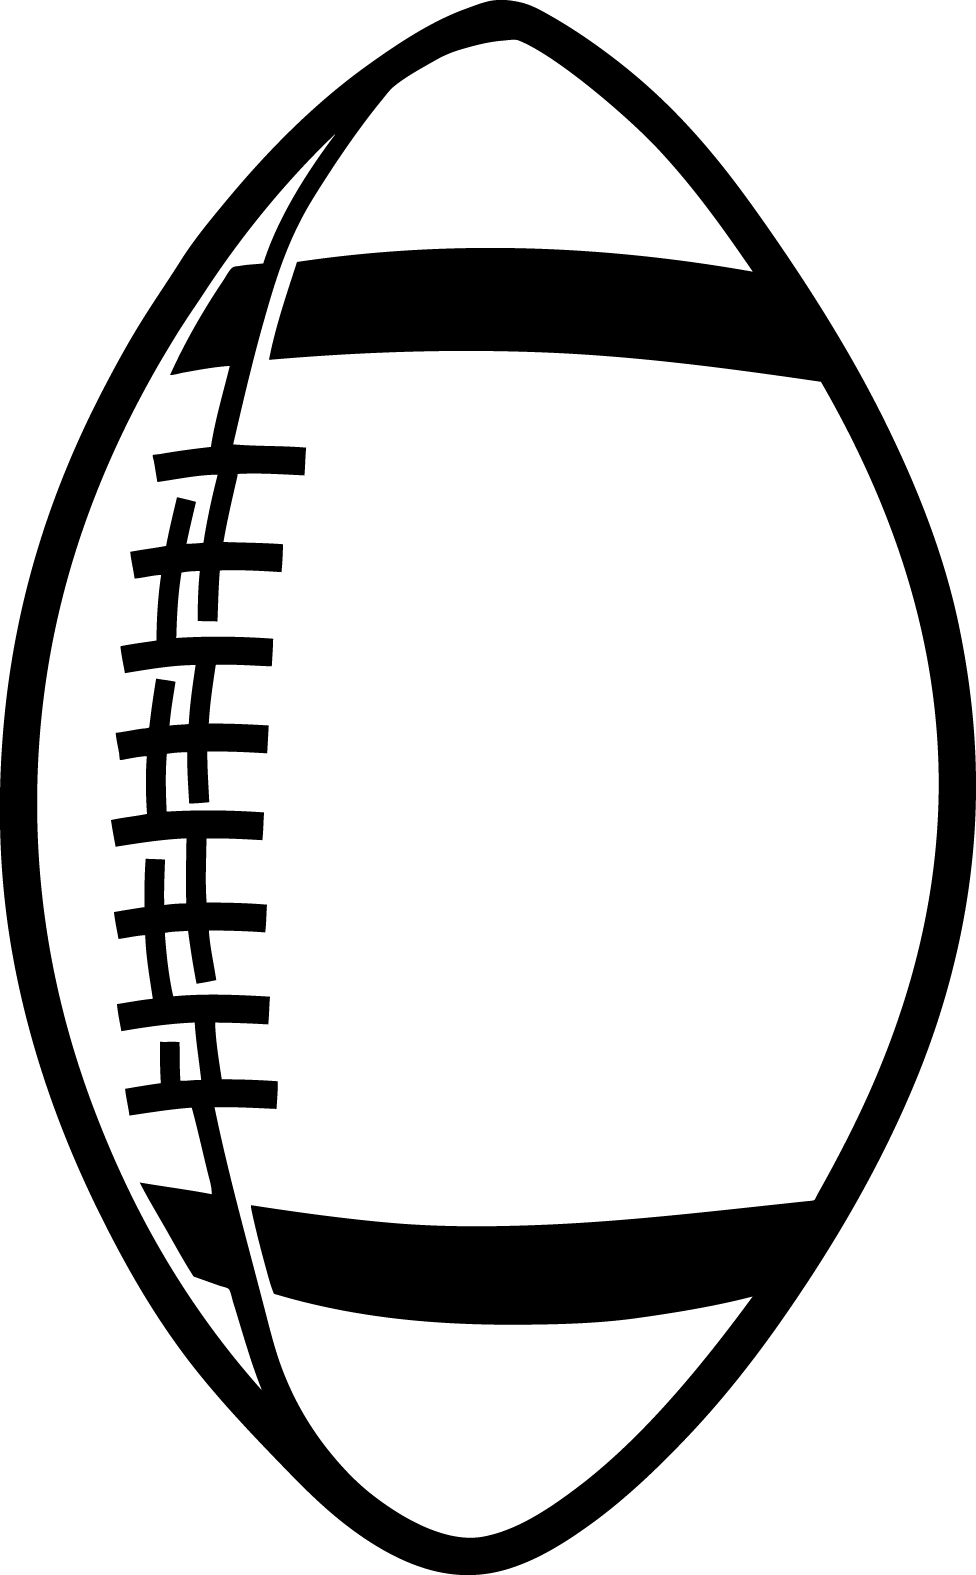 Ohio state football clipart free svg black and white library Dragonfly Outline Clipart | Clipart Panda - Free Clipart Images ... svg black and white library